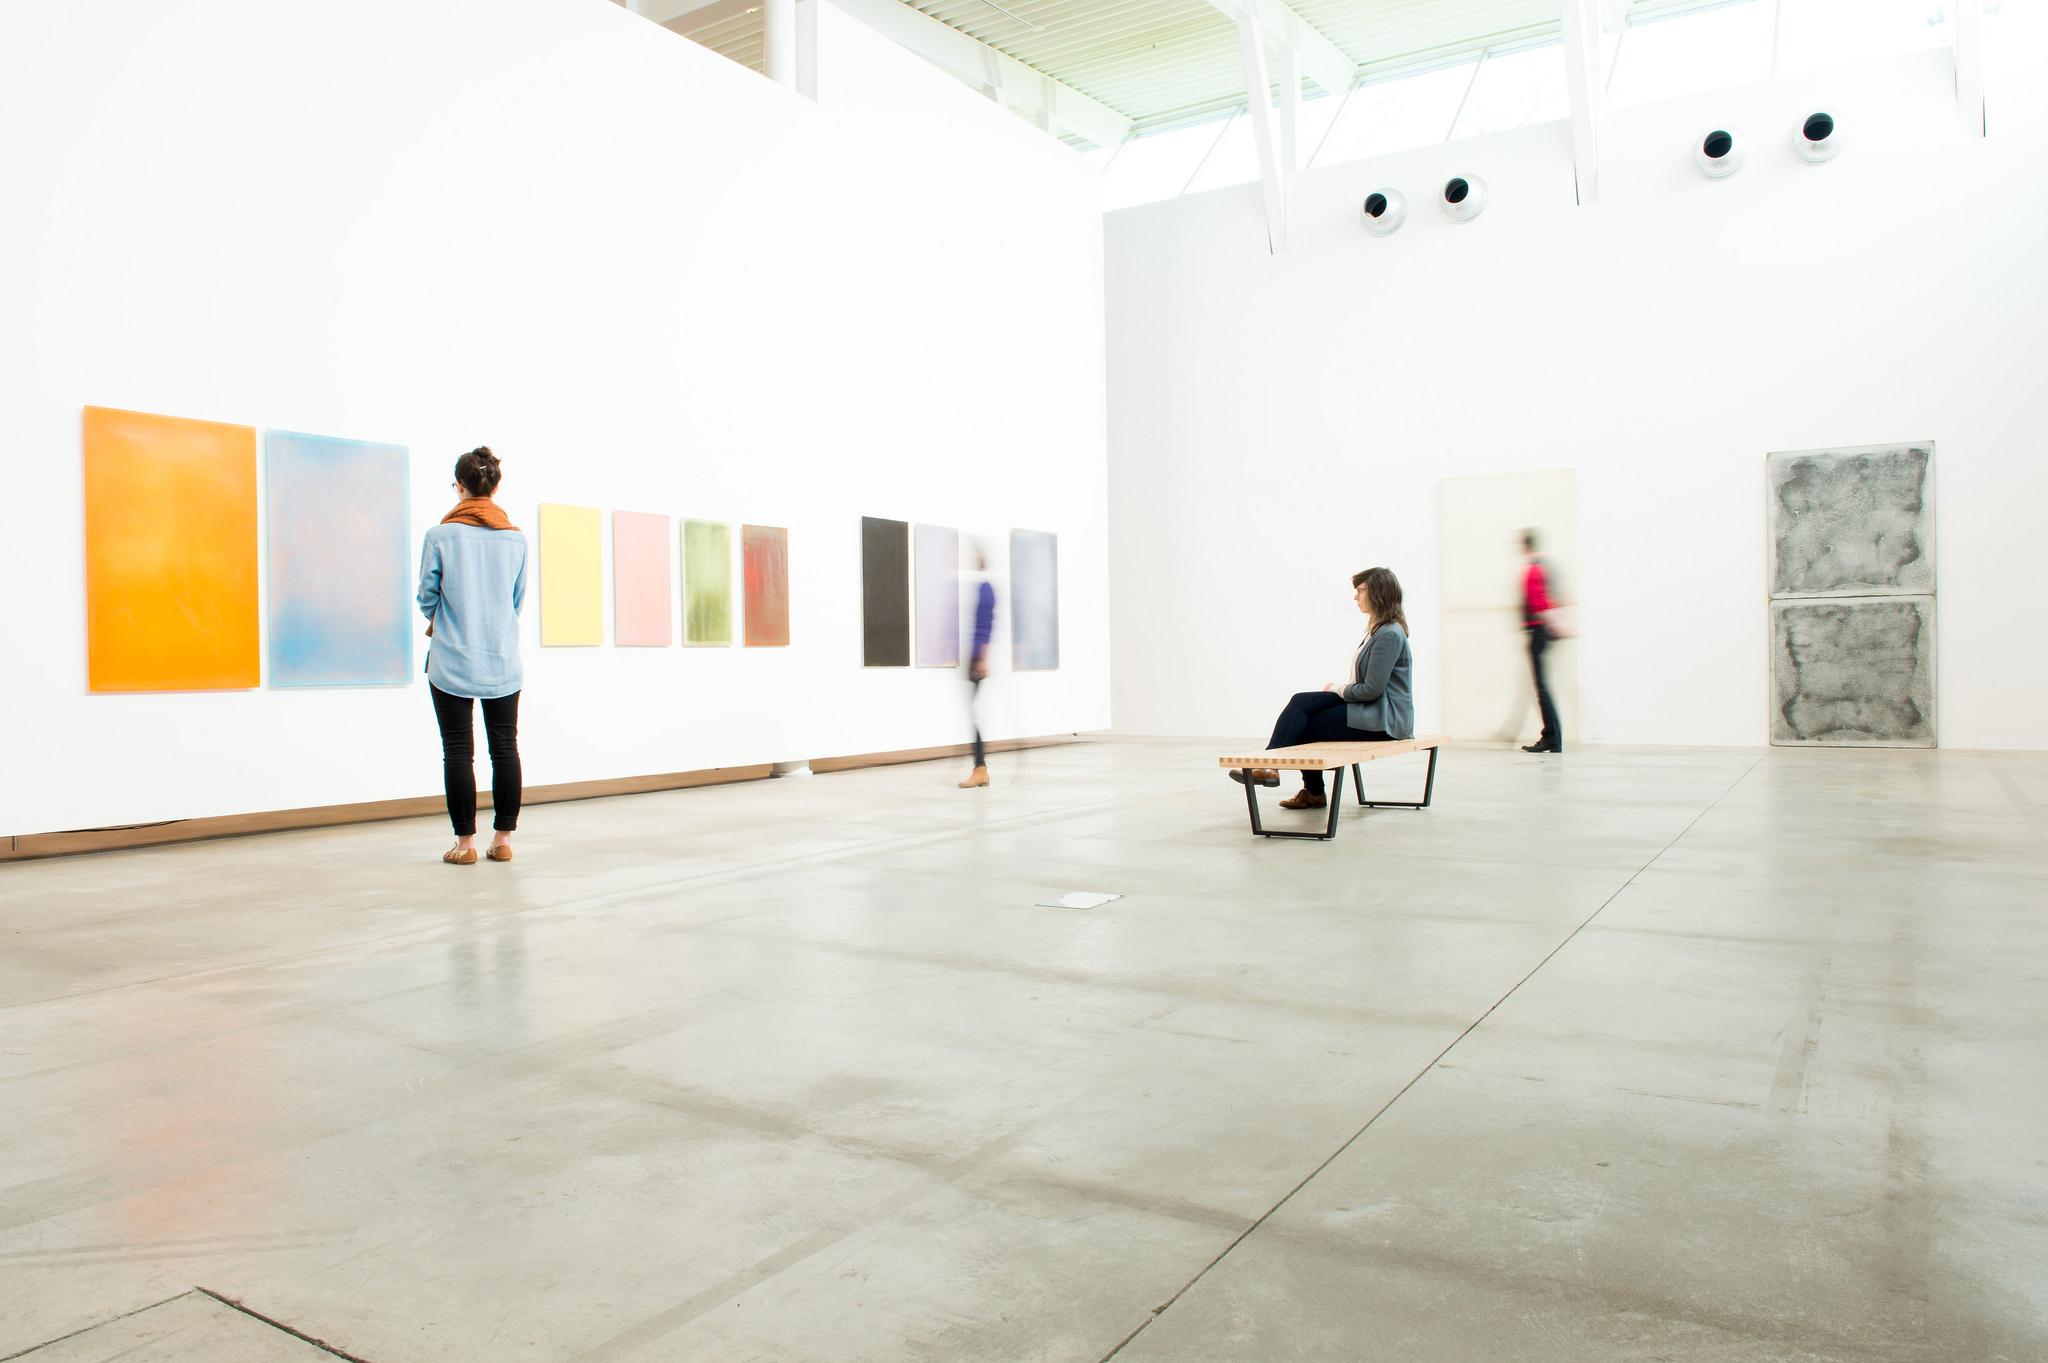 students in a bright art gallery